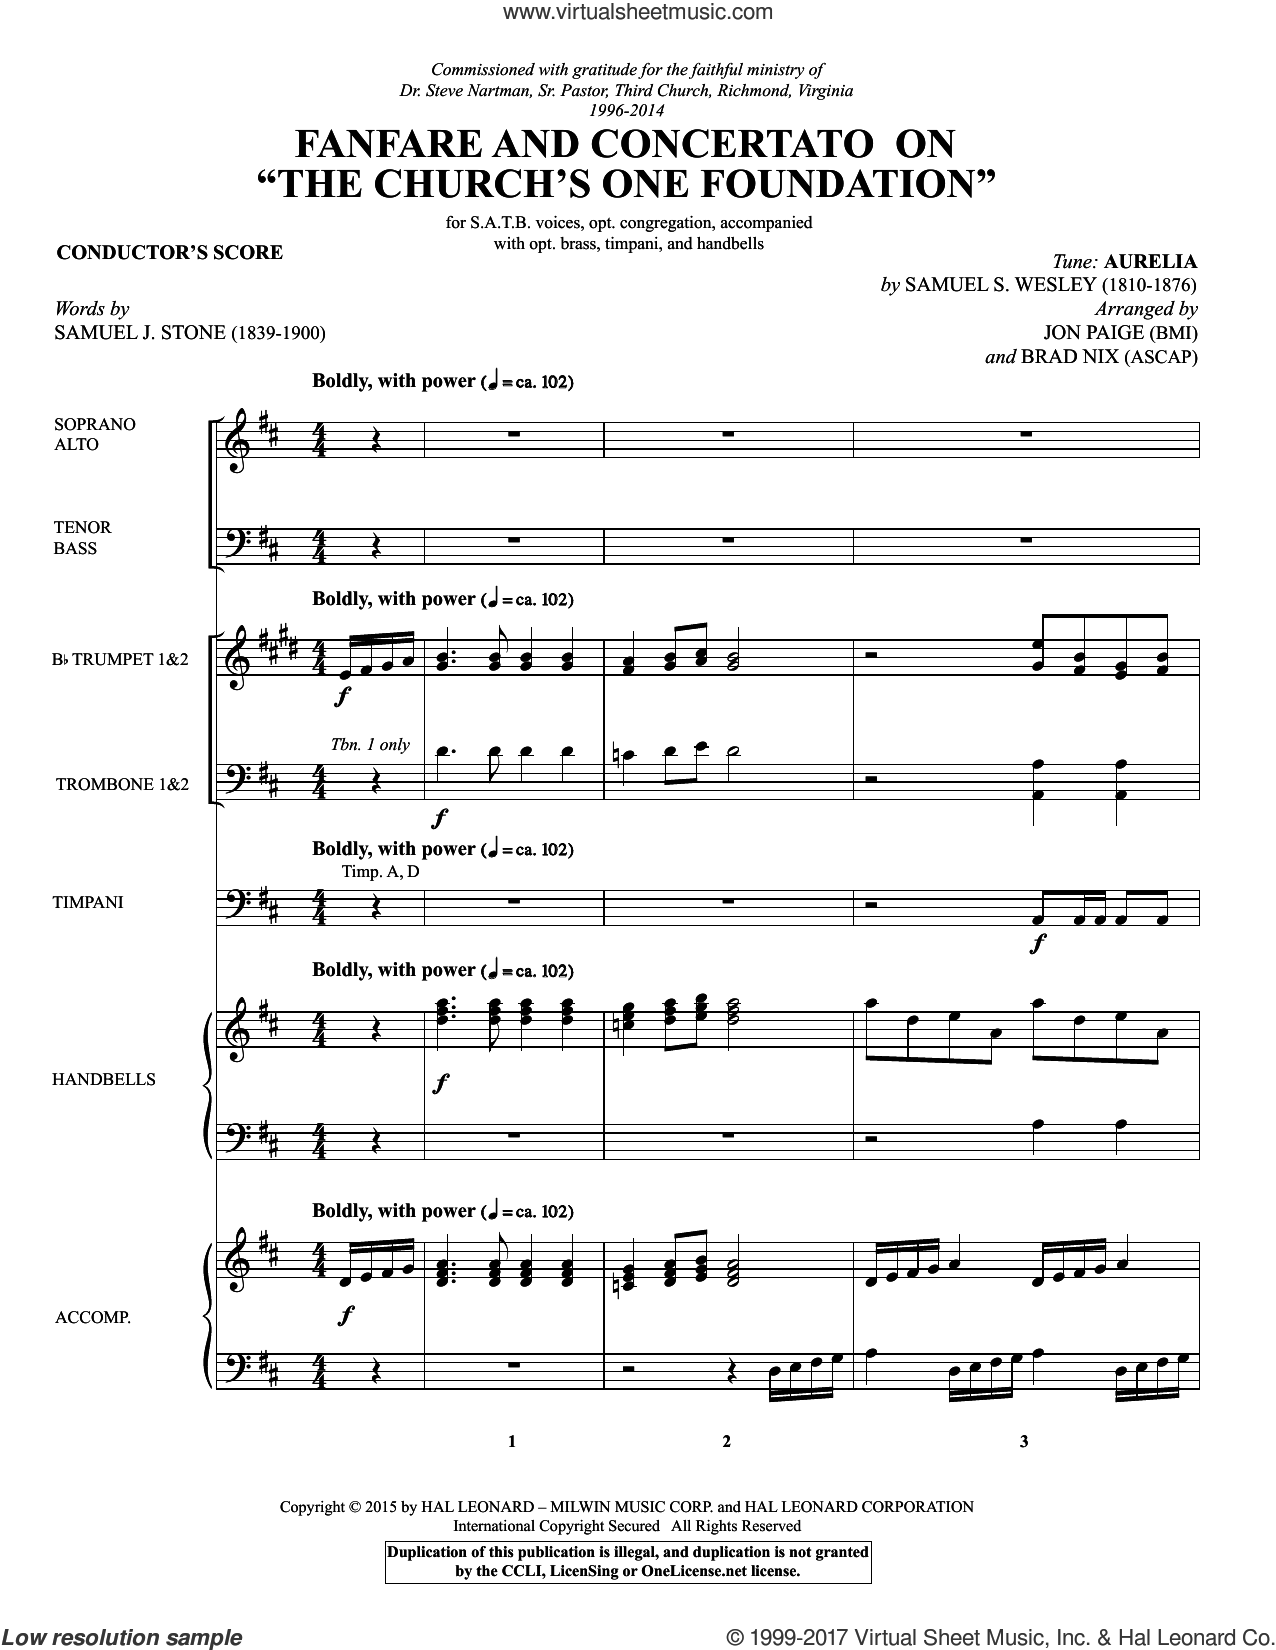 Fanfare and Concertato on 'The Church's One Foundation' (COMPLETE) sheet music for orchestra/band by Brad Nix, Jon Paige, Samuel J. Stone, Samuel John Stone, Samuel S. Wesley and Samuel Sebastian Wesley, intermediate